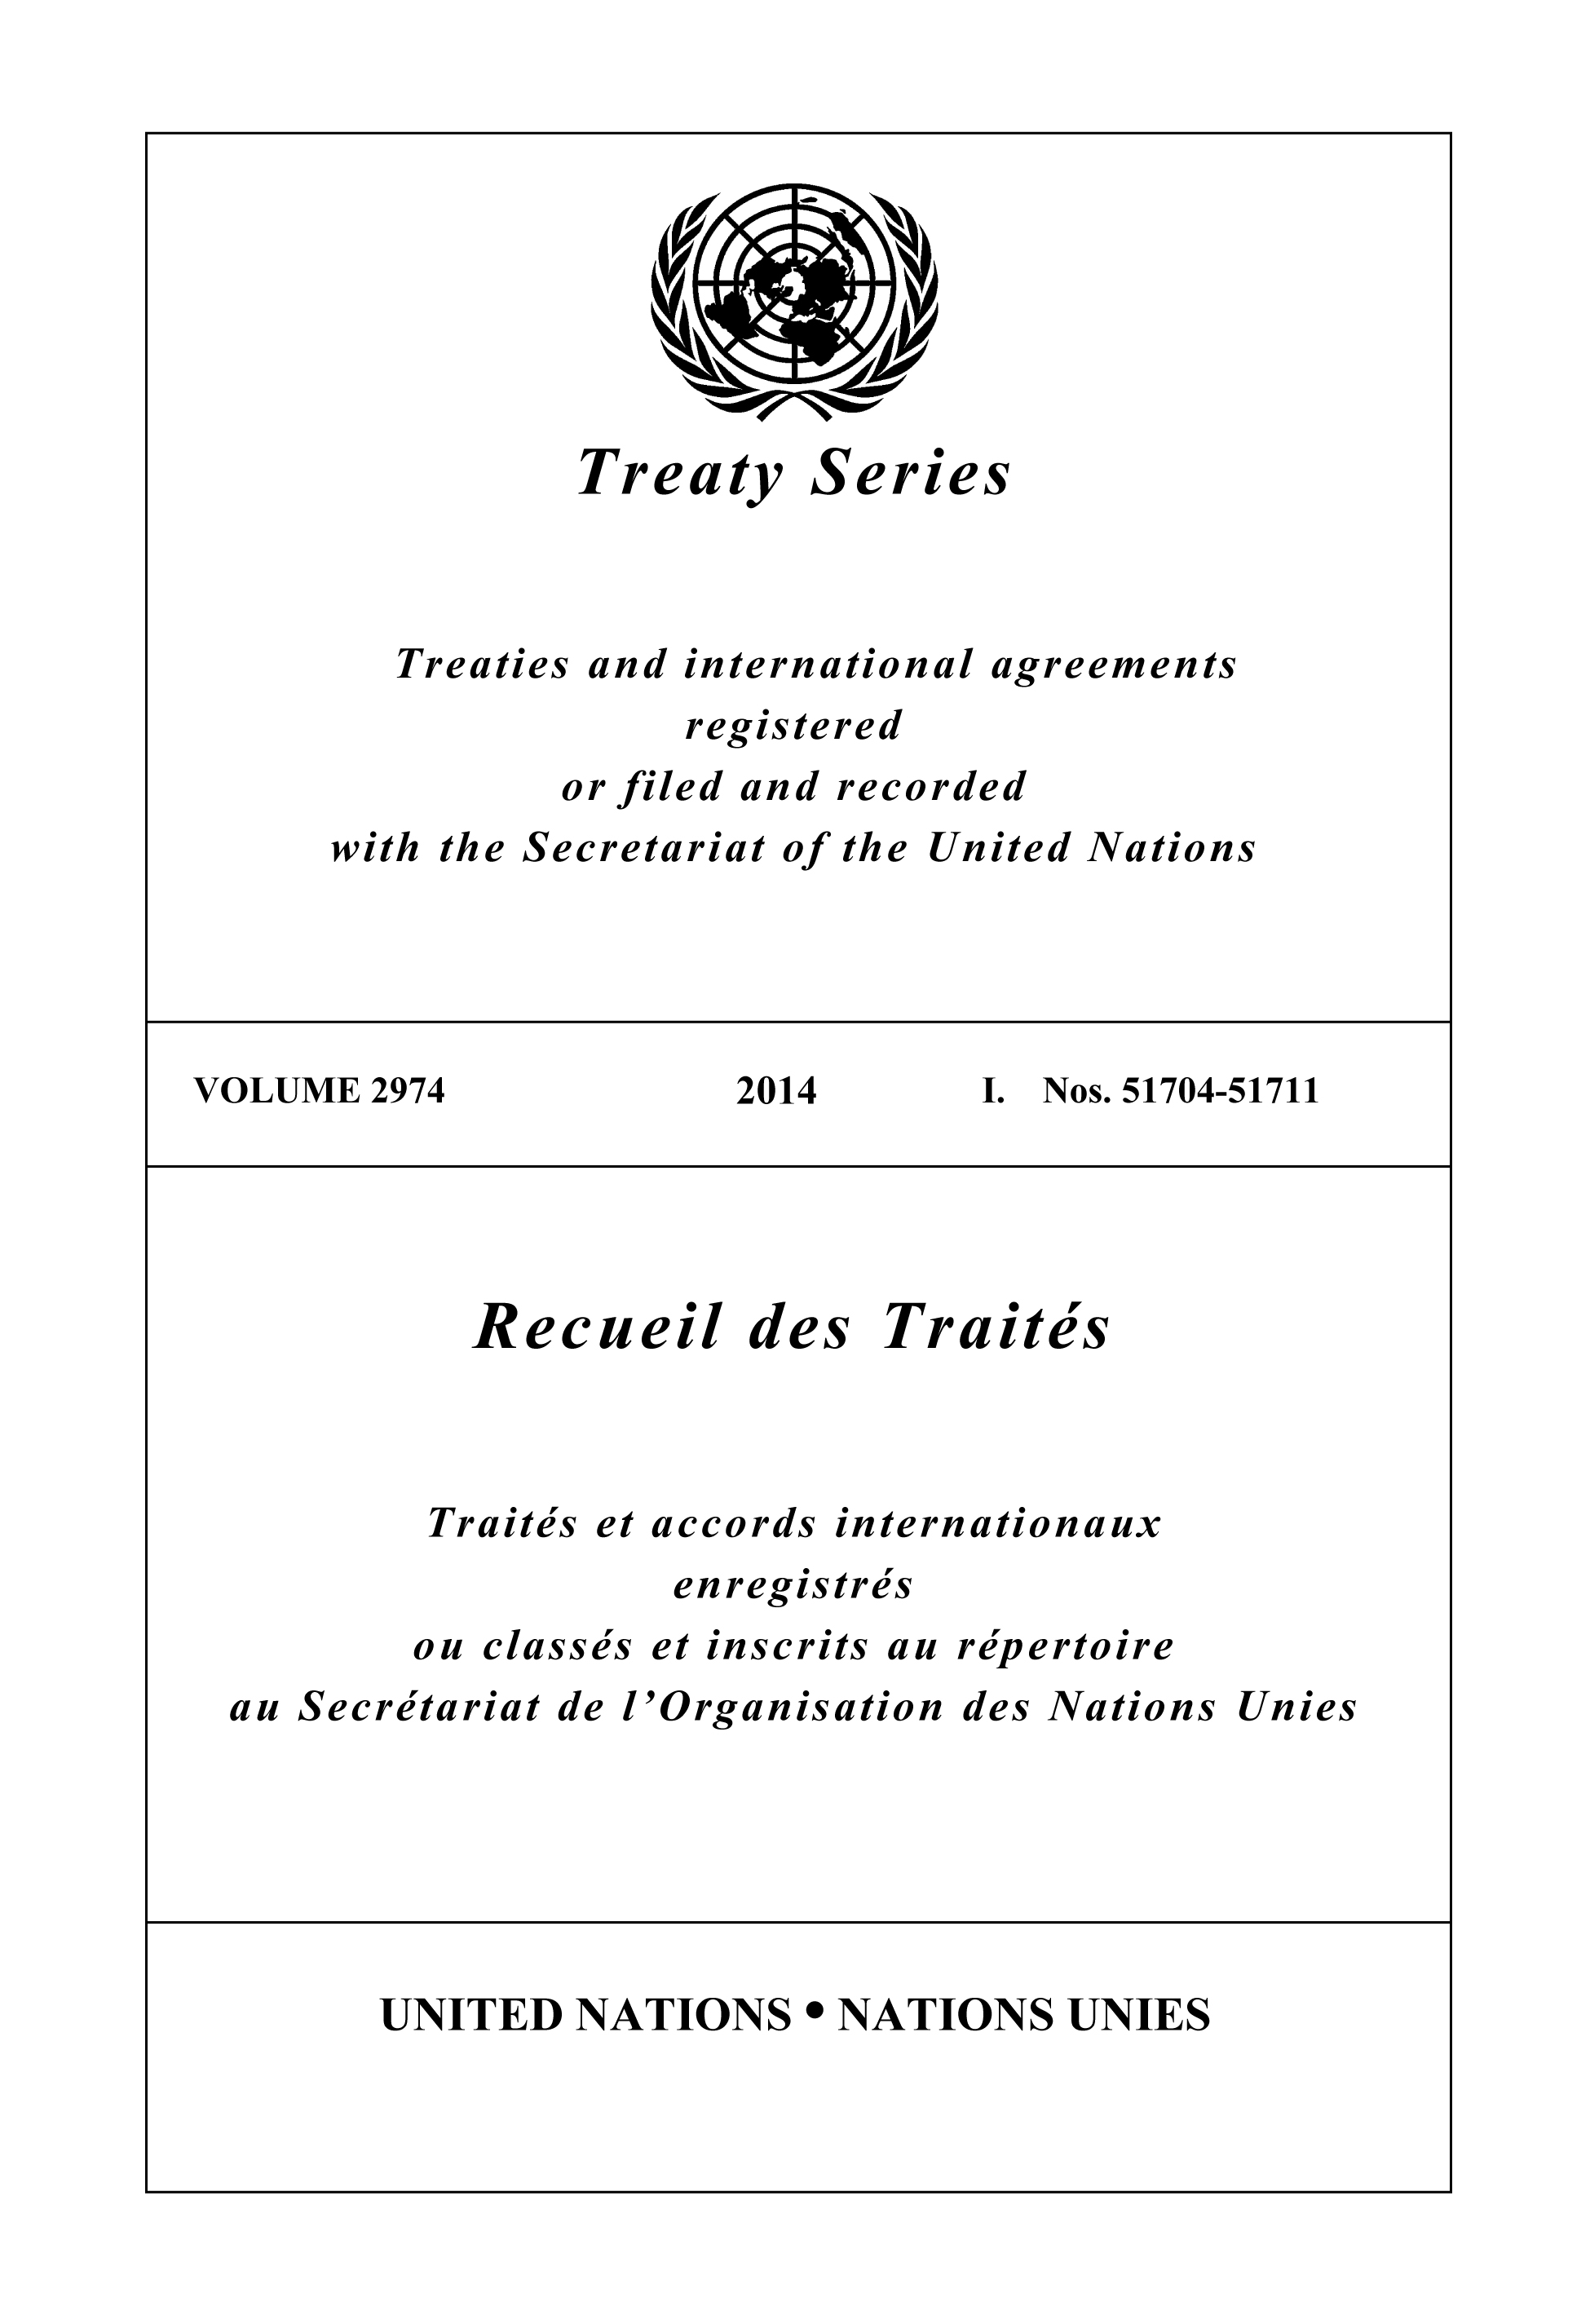 TREATY SERIES 2974